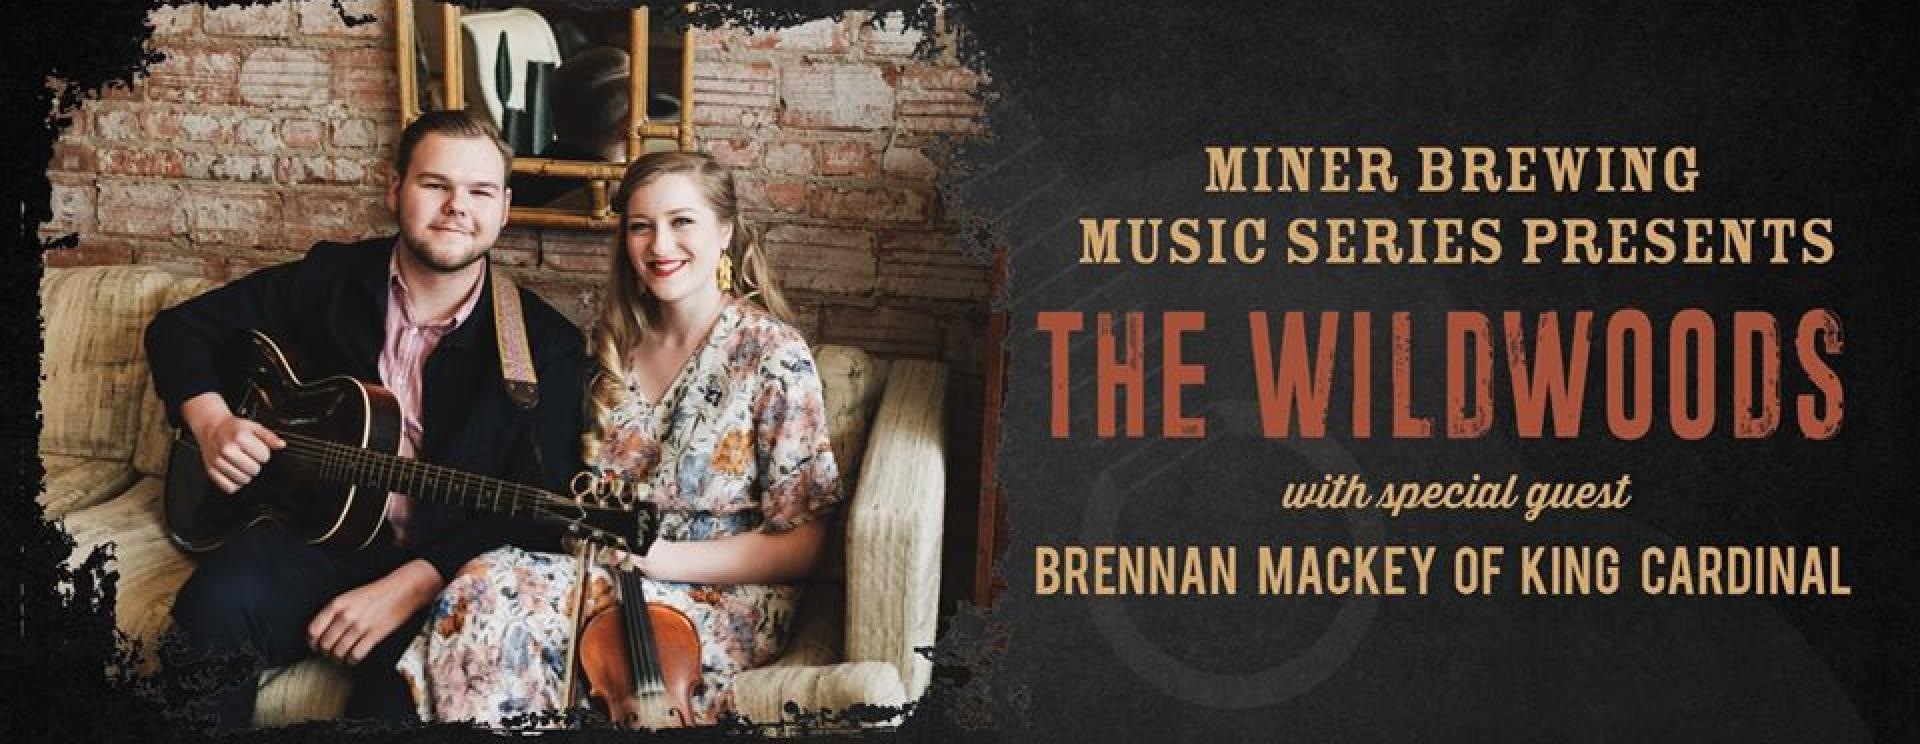 Miner Brewing Music Series Presents: The Wildwoods with special guest Brennan Mackey